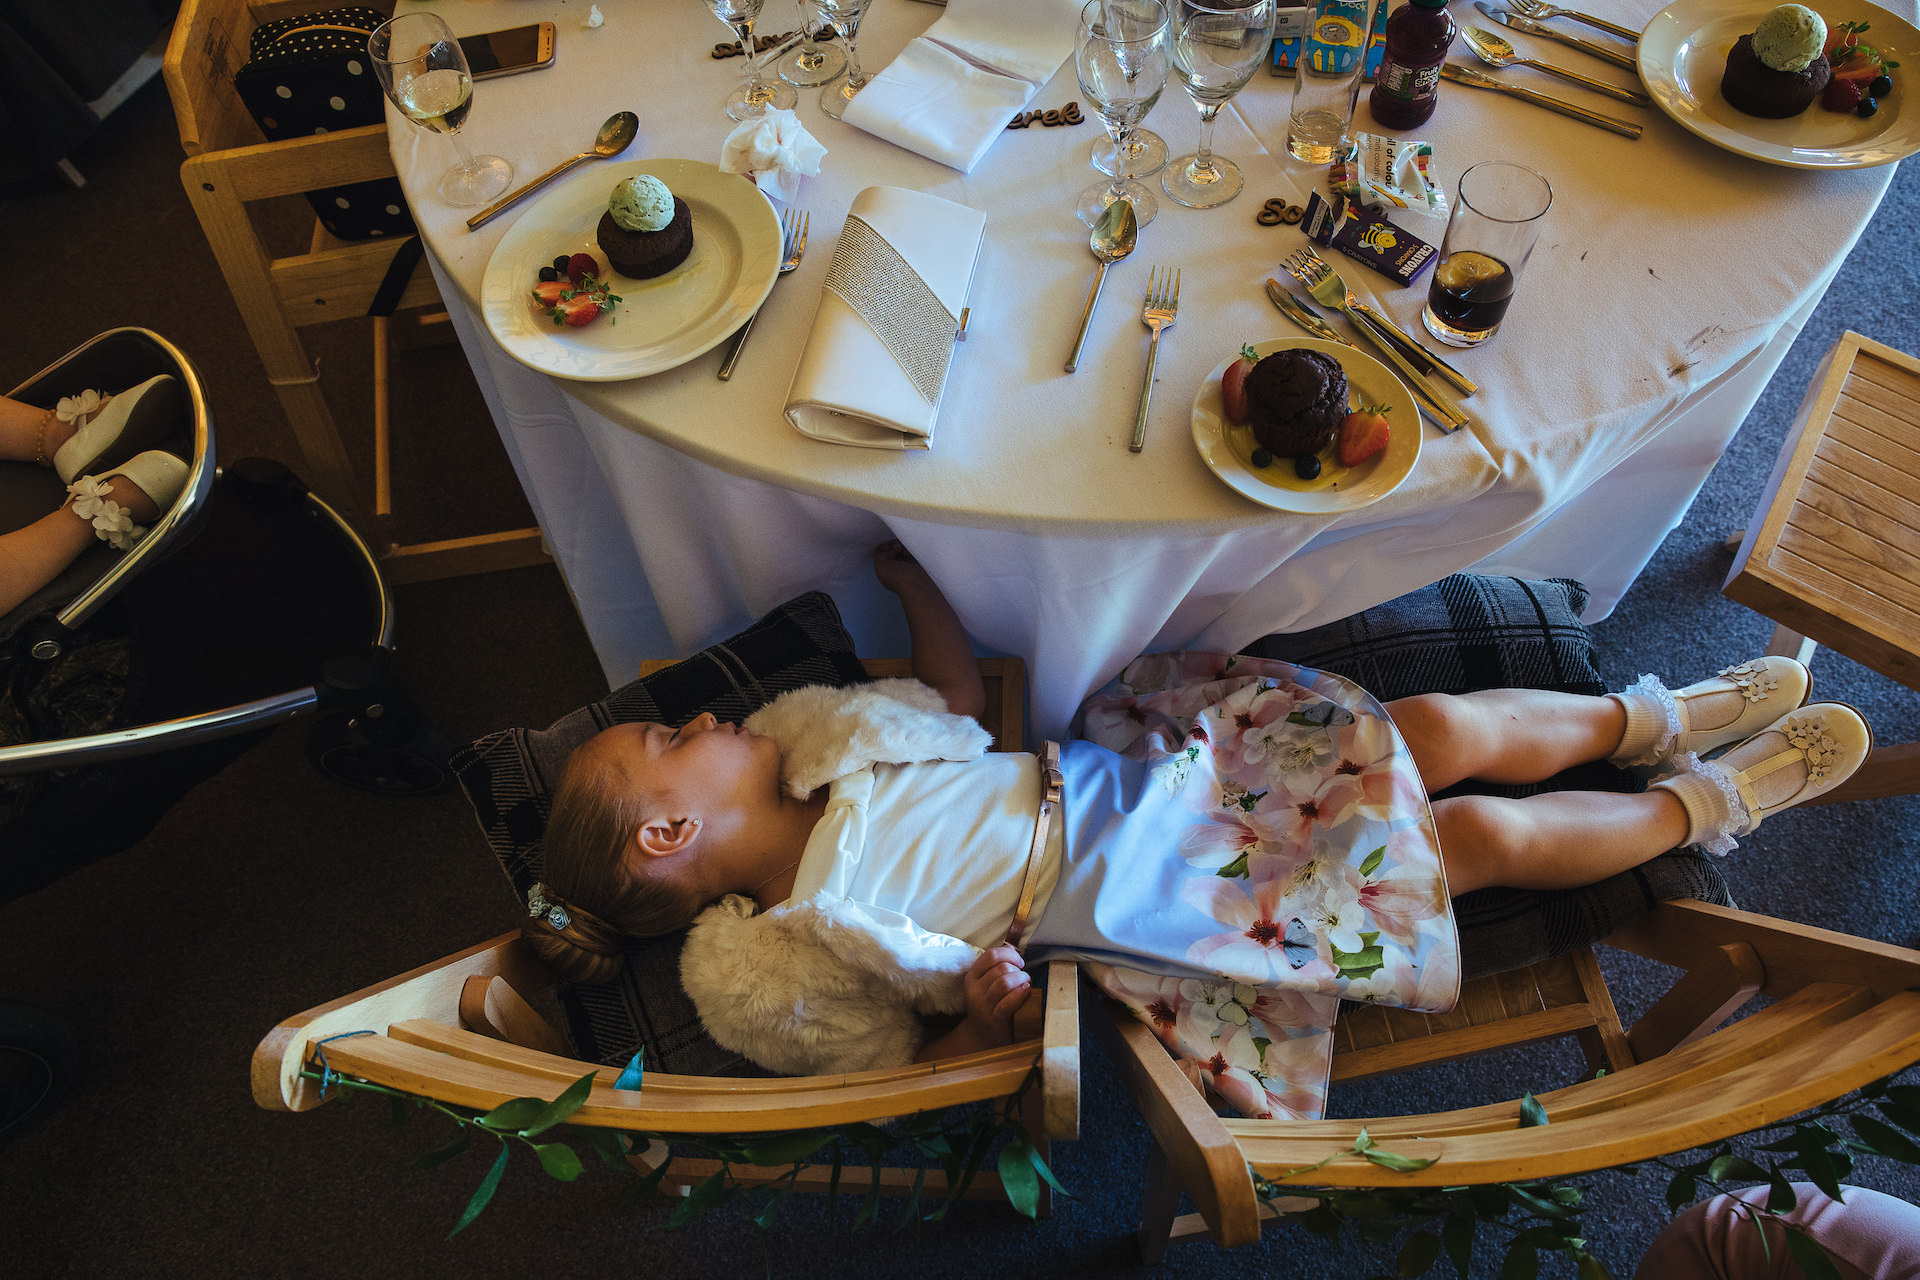 Away from the main wedding action, a photo of a young flowergirl asleep at the table